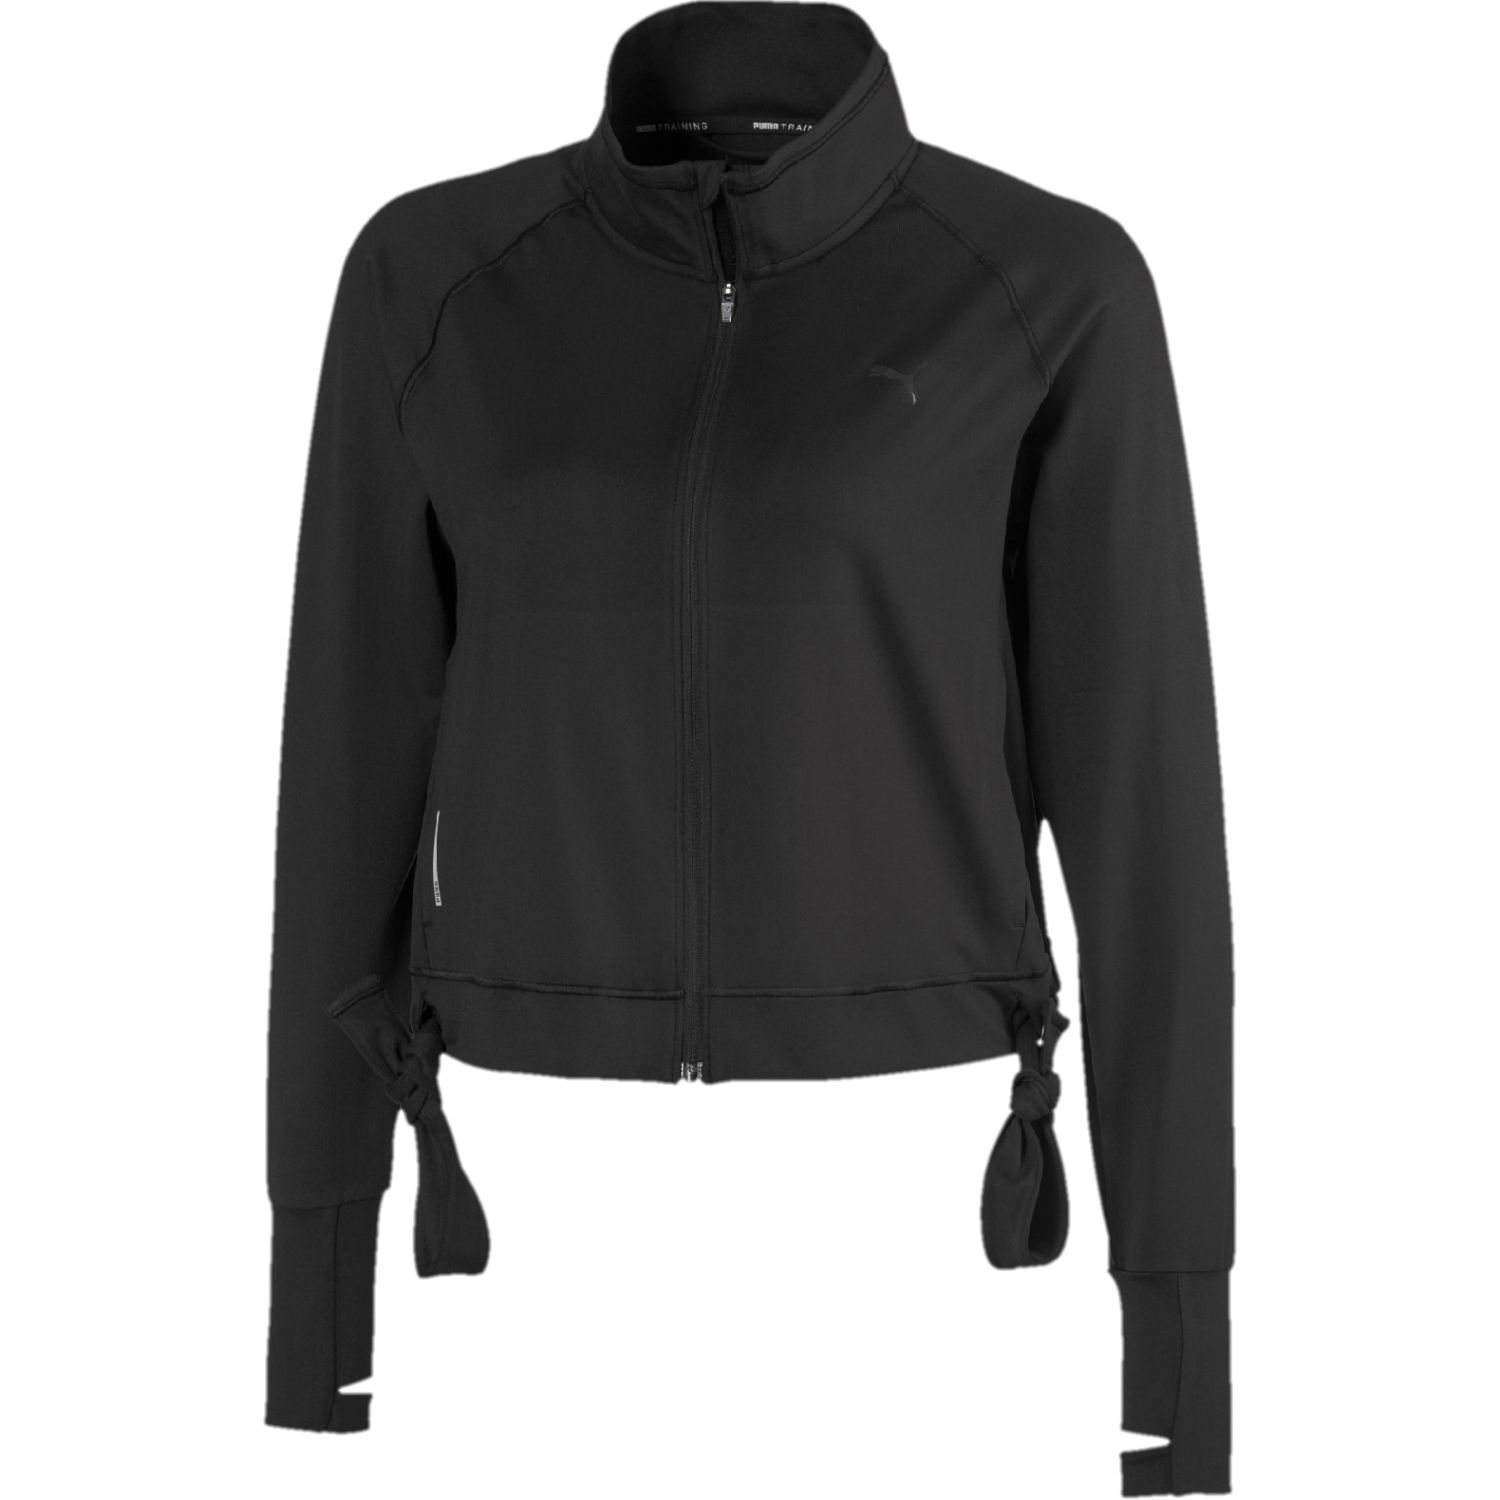 Puma studio adjustable jacket Negro Casacas de Atletismo